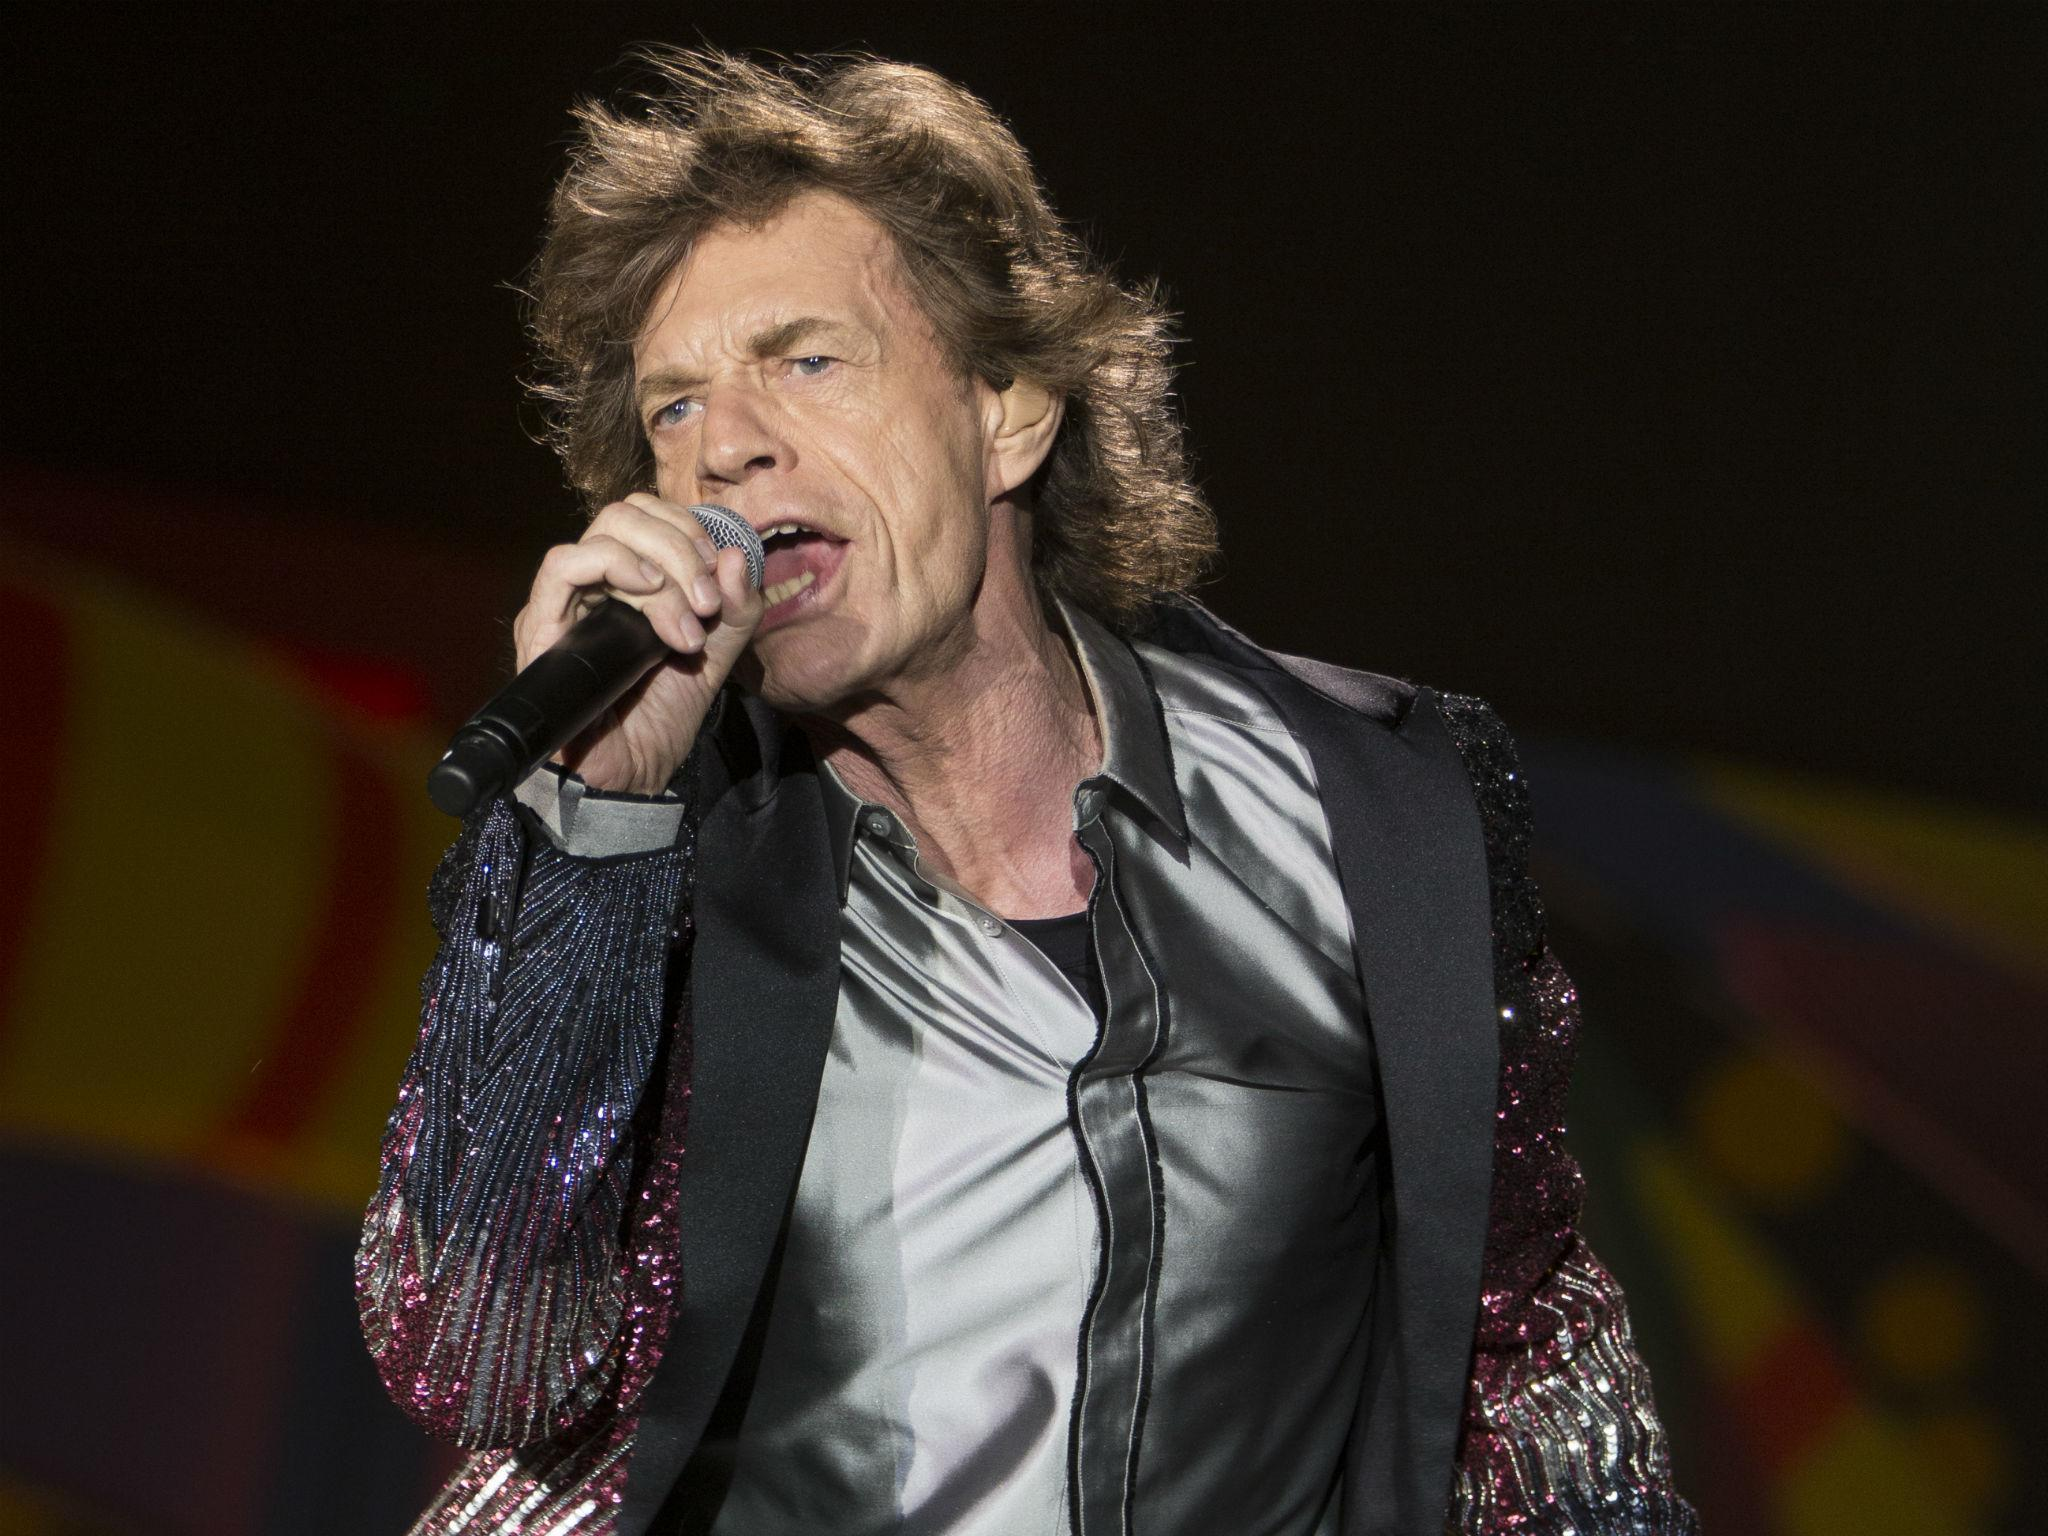 Mick Jagger decided to make a series about backing vocalists January 23, 2014 66